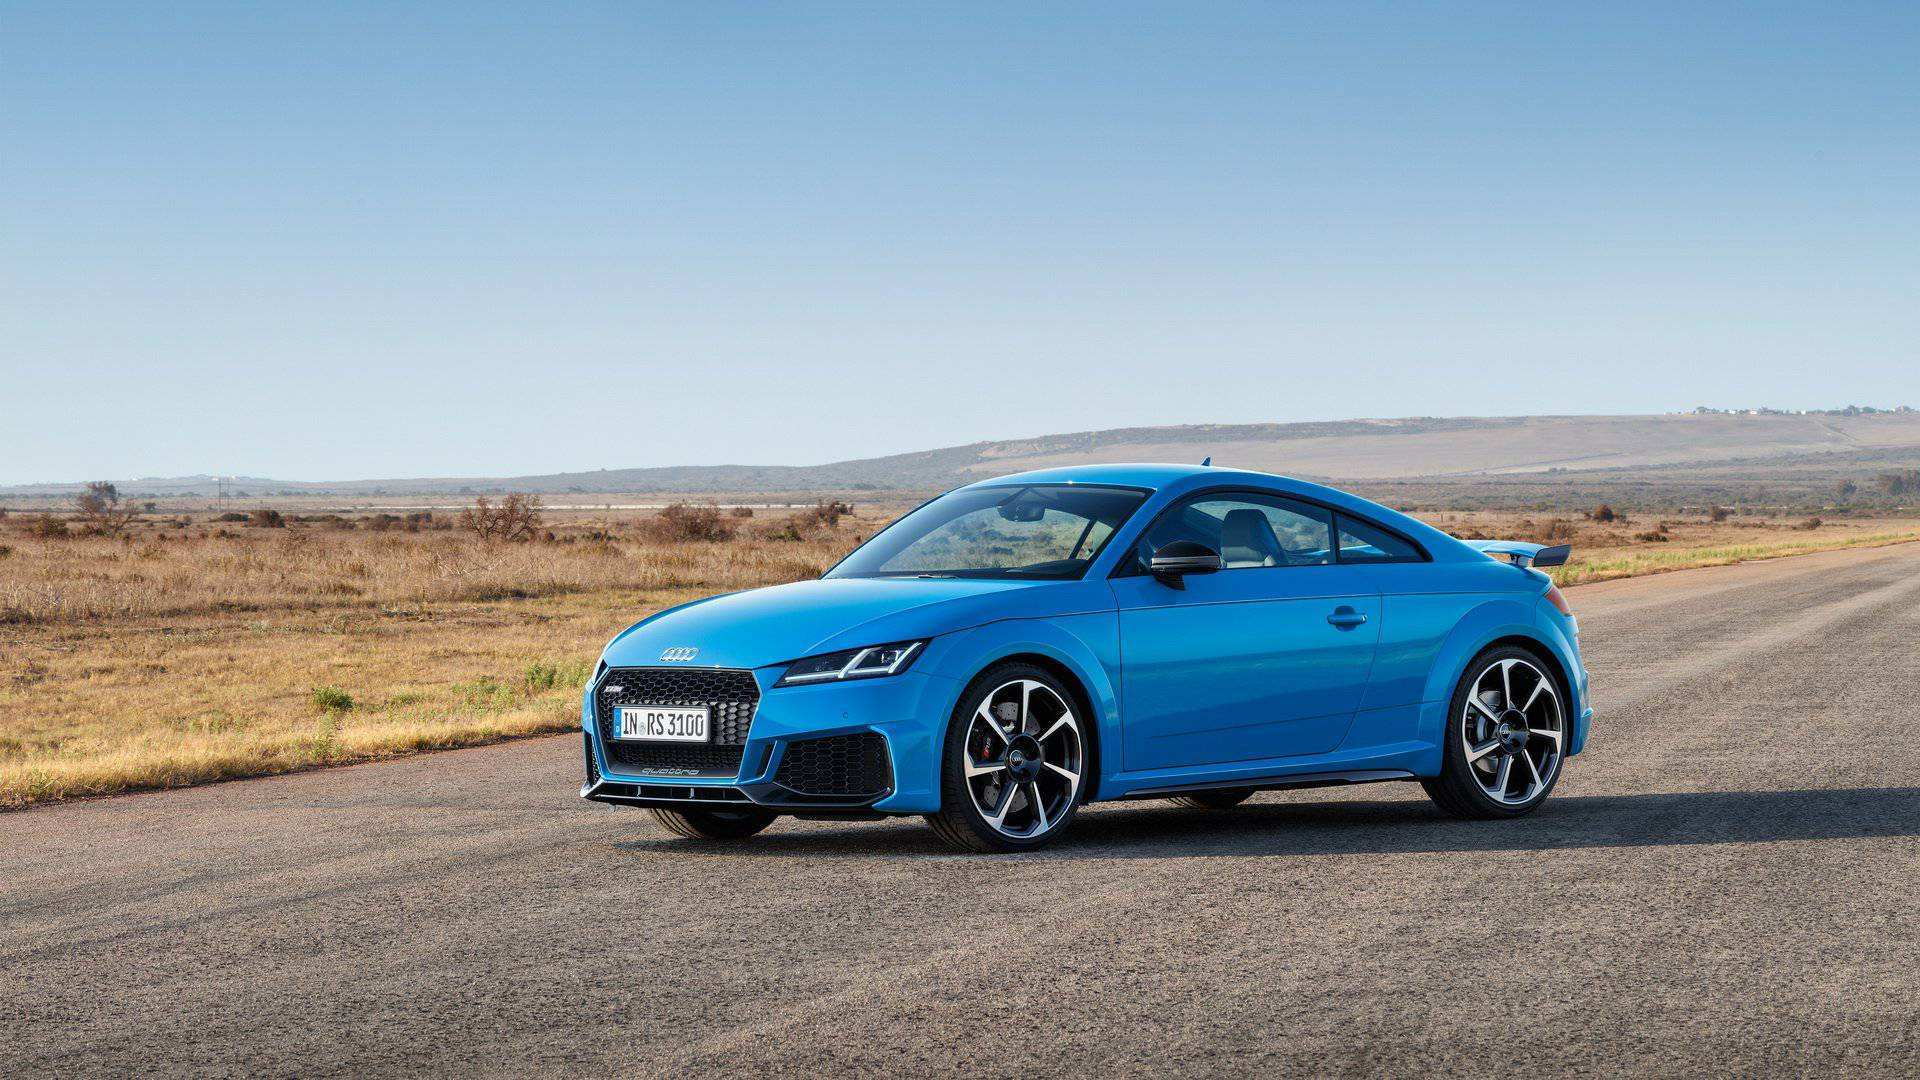 51 Gallery of Audi Tt Coupe 2020 Redesign and Concept with Audi Tt Coupe 2020